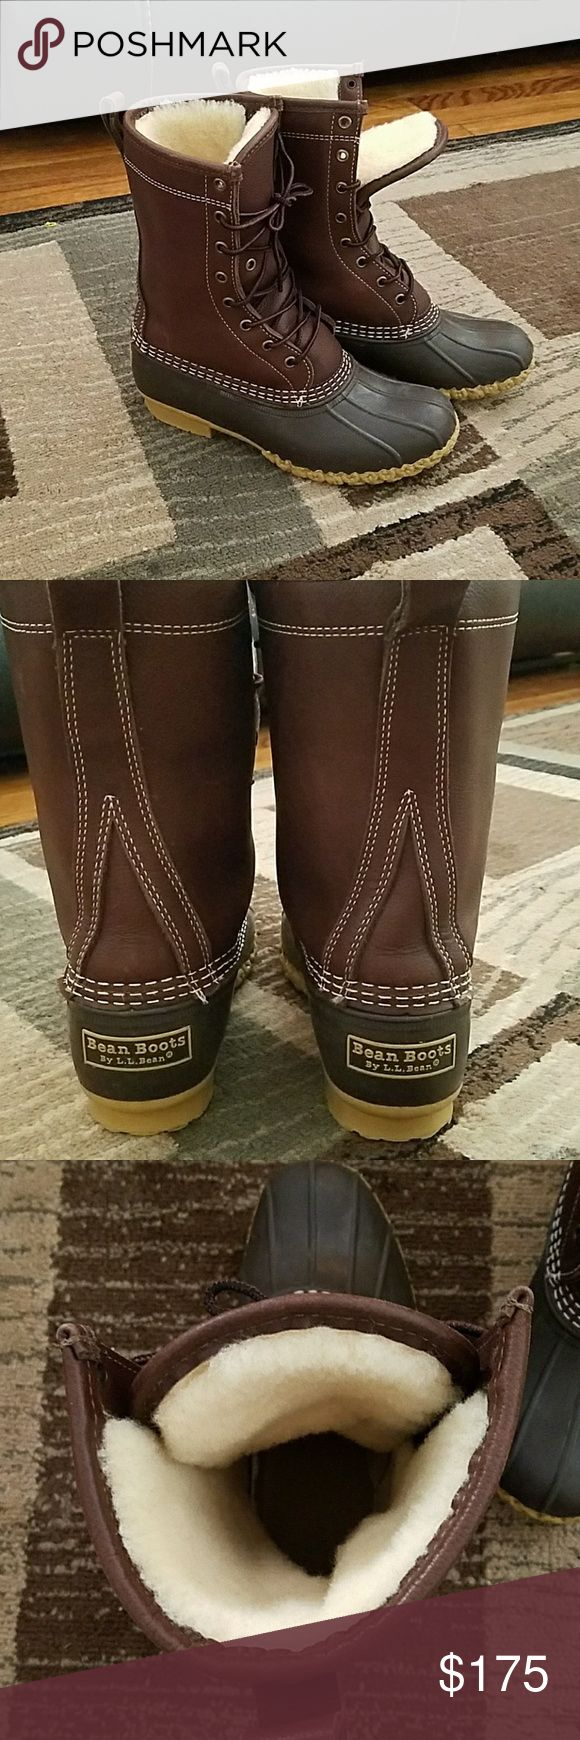 LL Bean boots Tall brown limited edition lined boots. Size 7 but runs really big LL bean Shoes Winter & Rain Boots